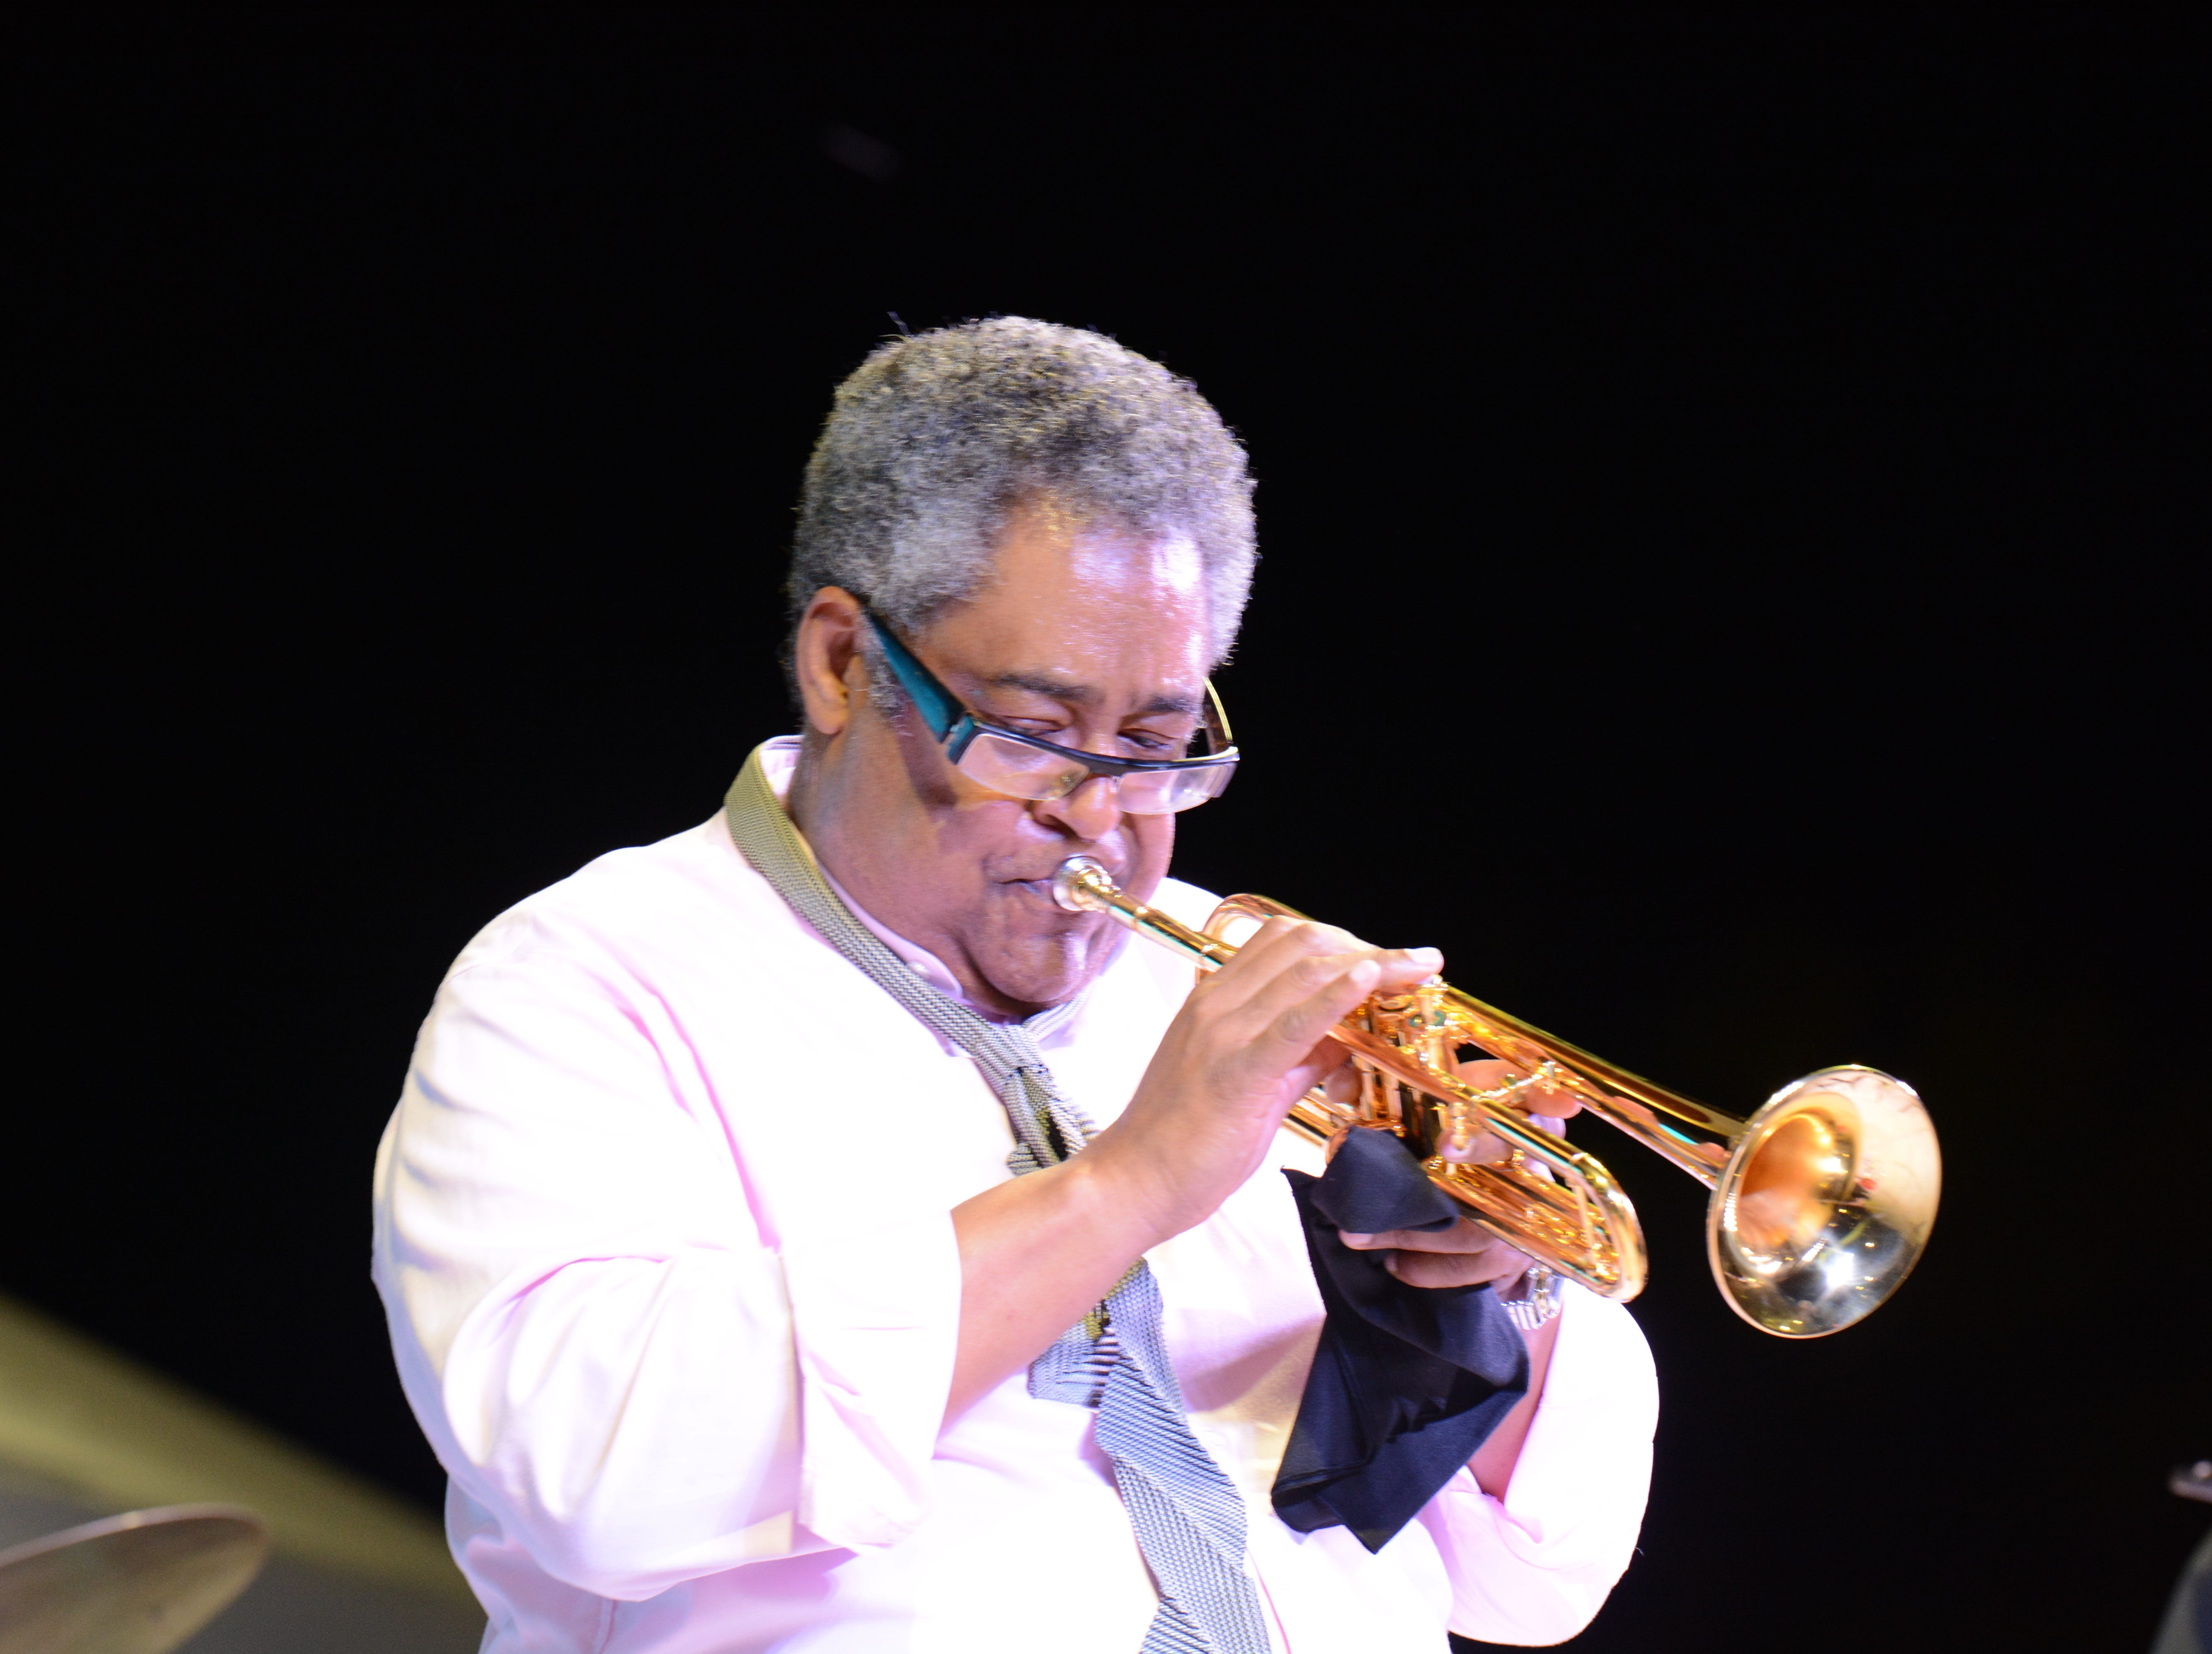 Trumpeter Jon Faddis performs with the Dizzy Gillespie All Star band at the Chandler Jazz Festival on April 6, 2019.